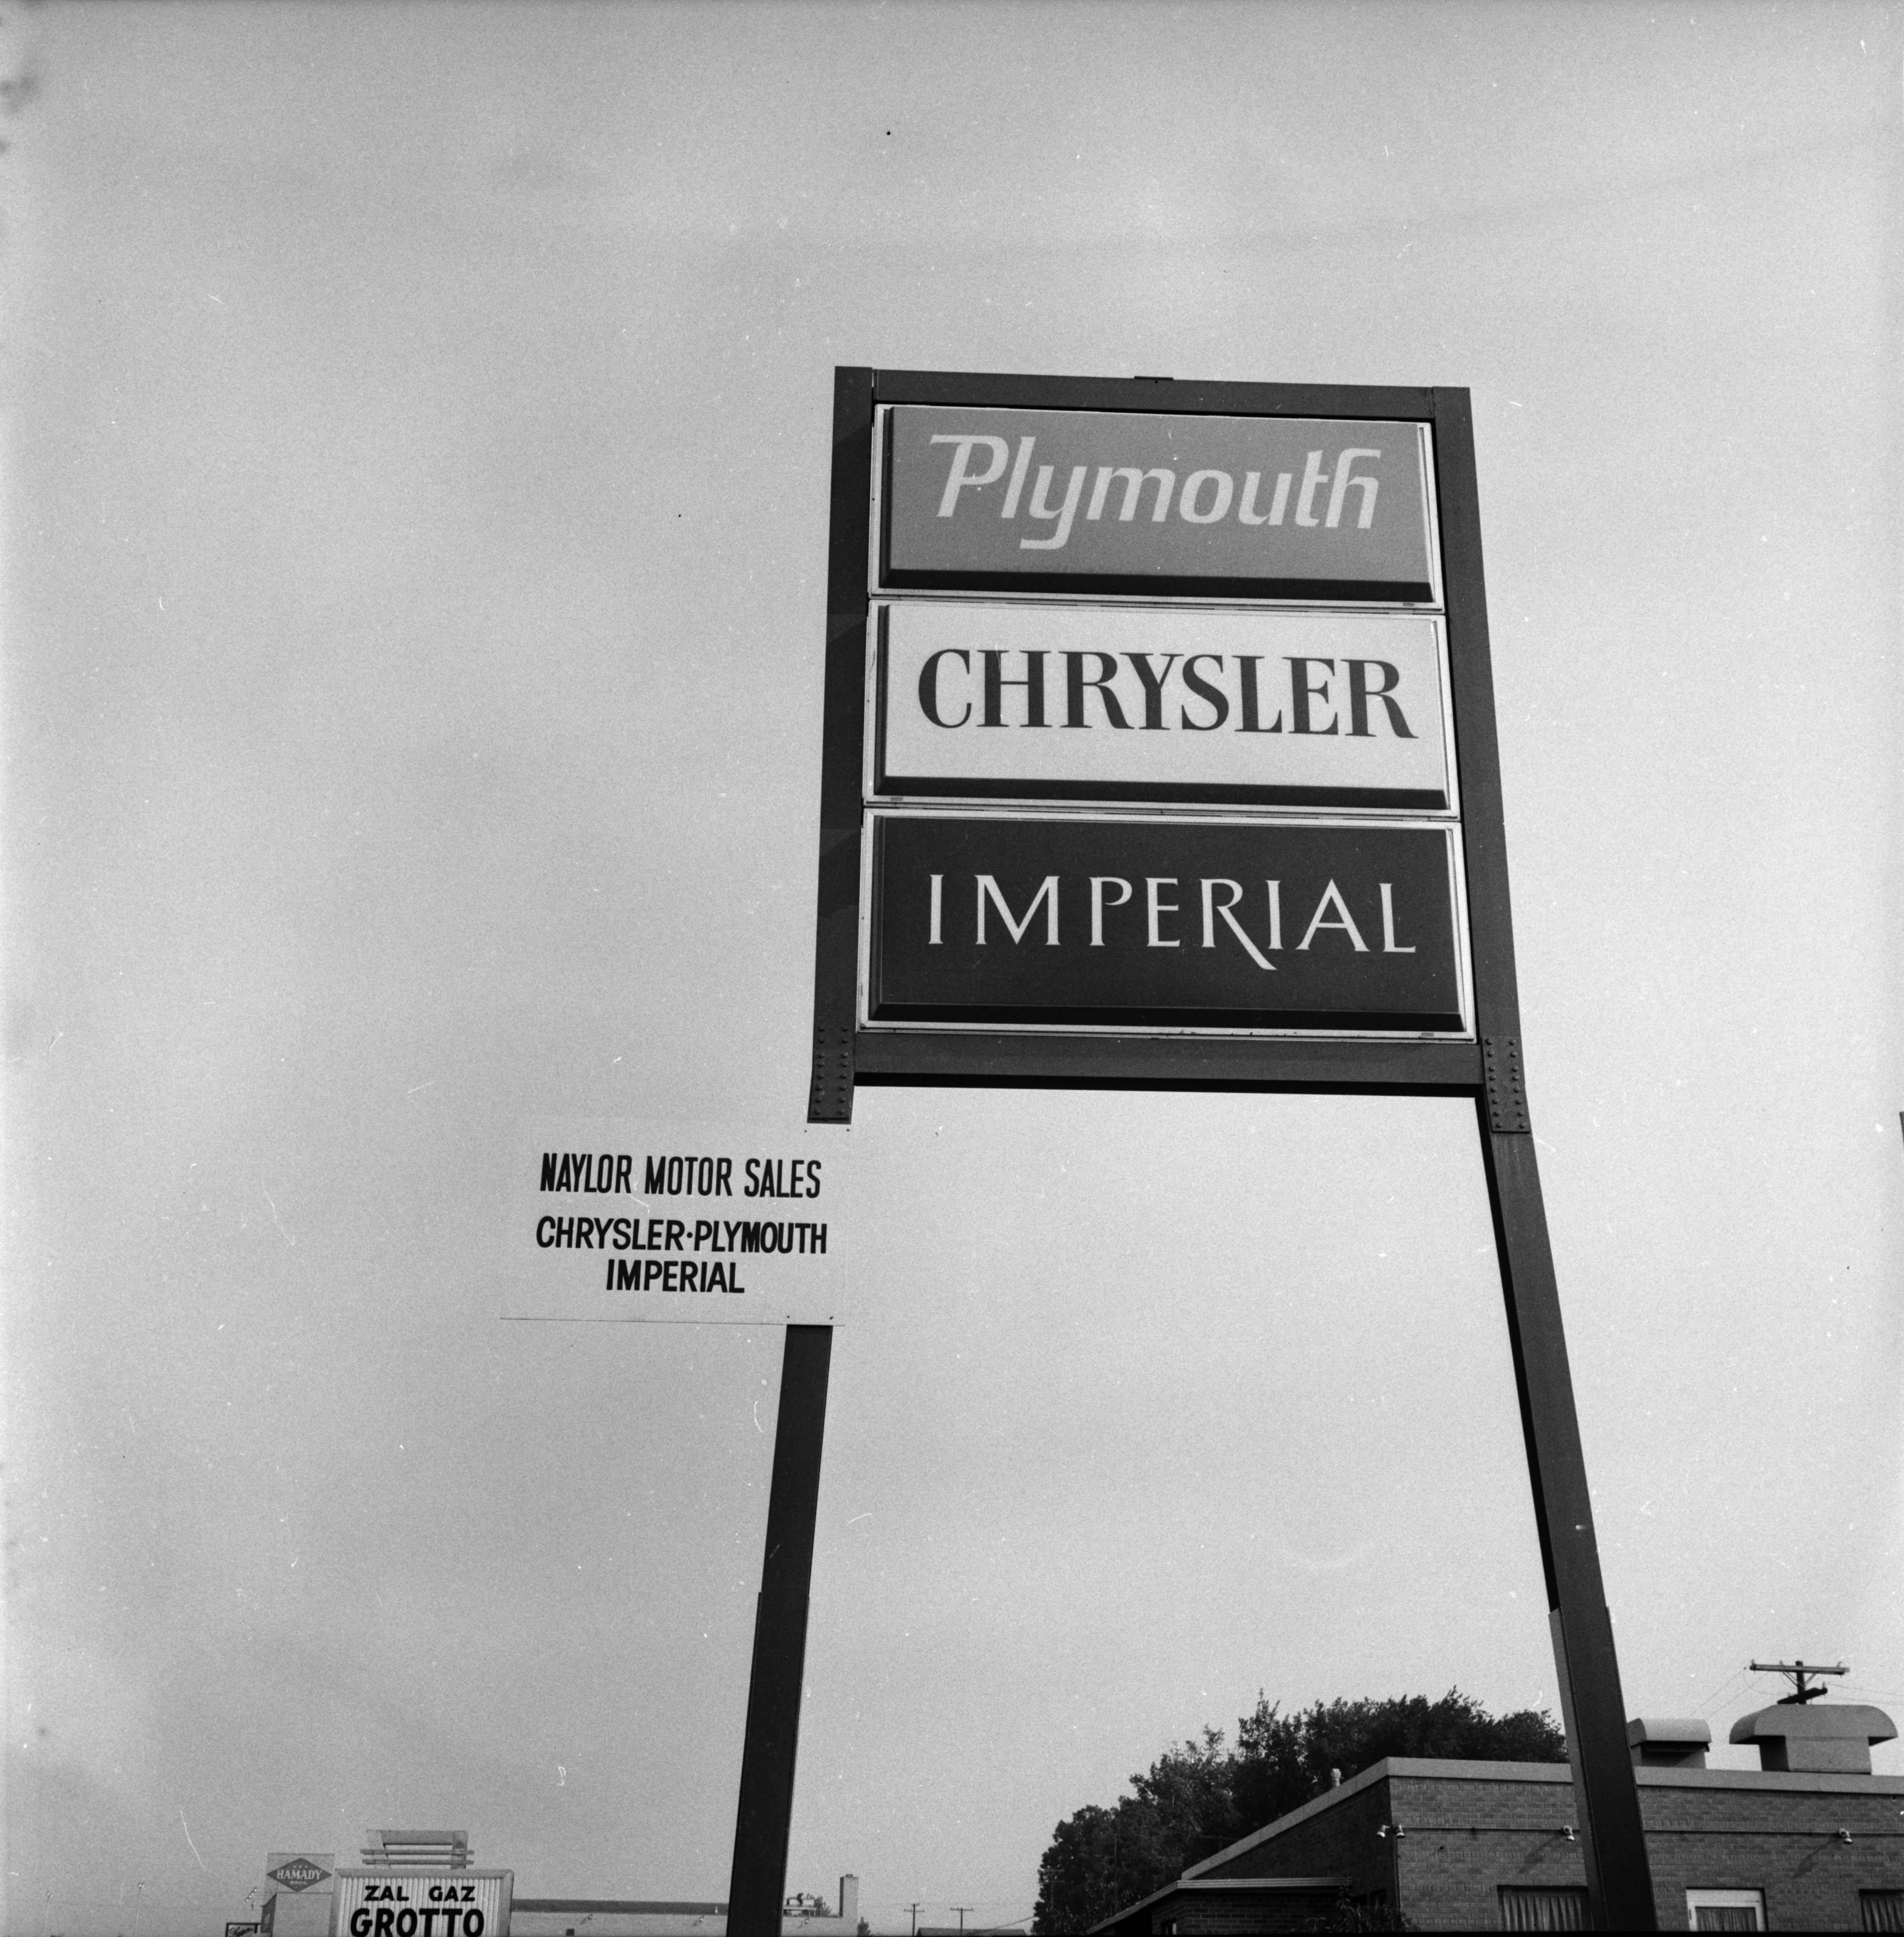 Ann Arbor Chamber of Commerce Sample Sign at Chrysler-Plymouth Imperial, August 1966 image